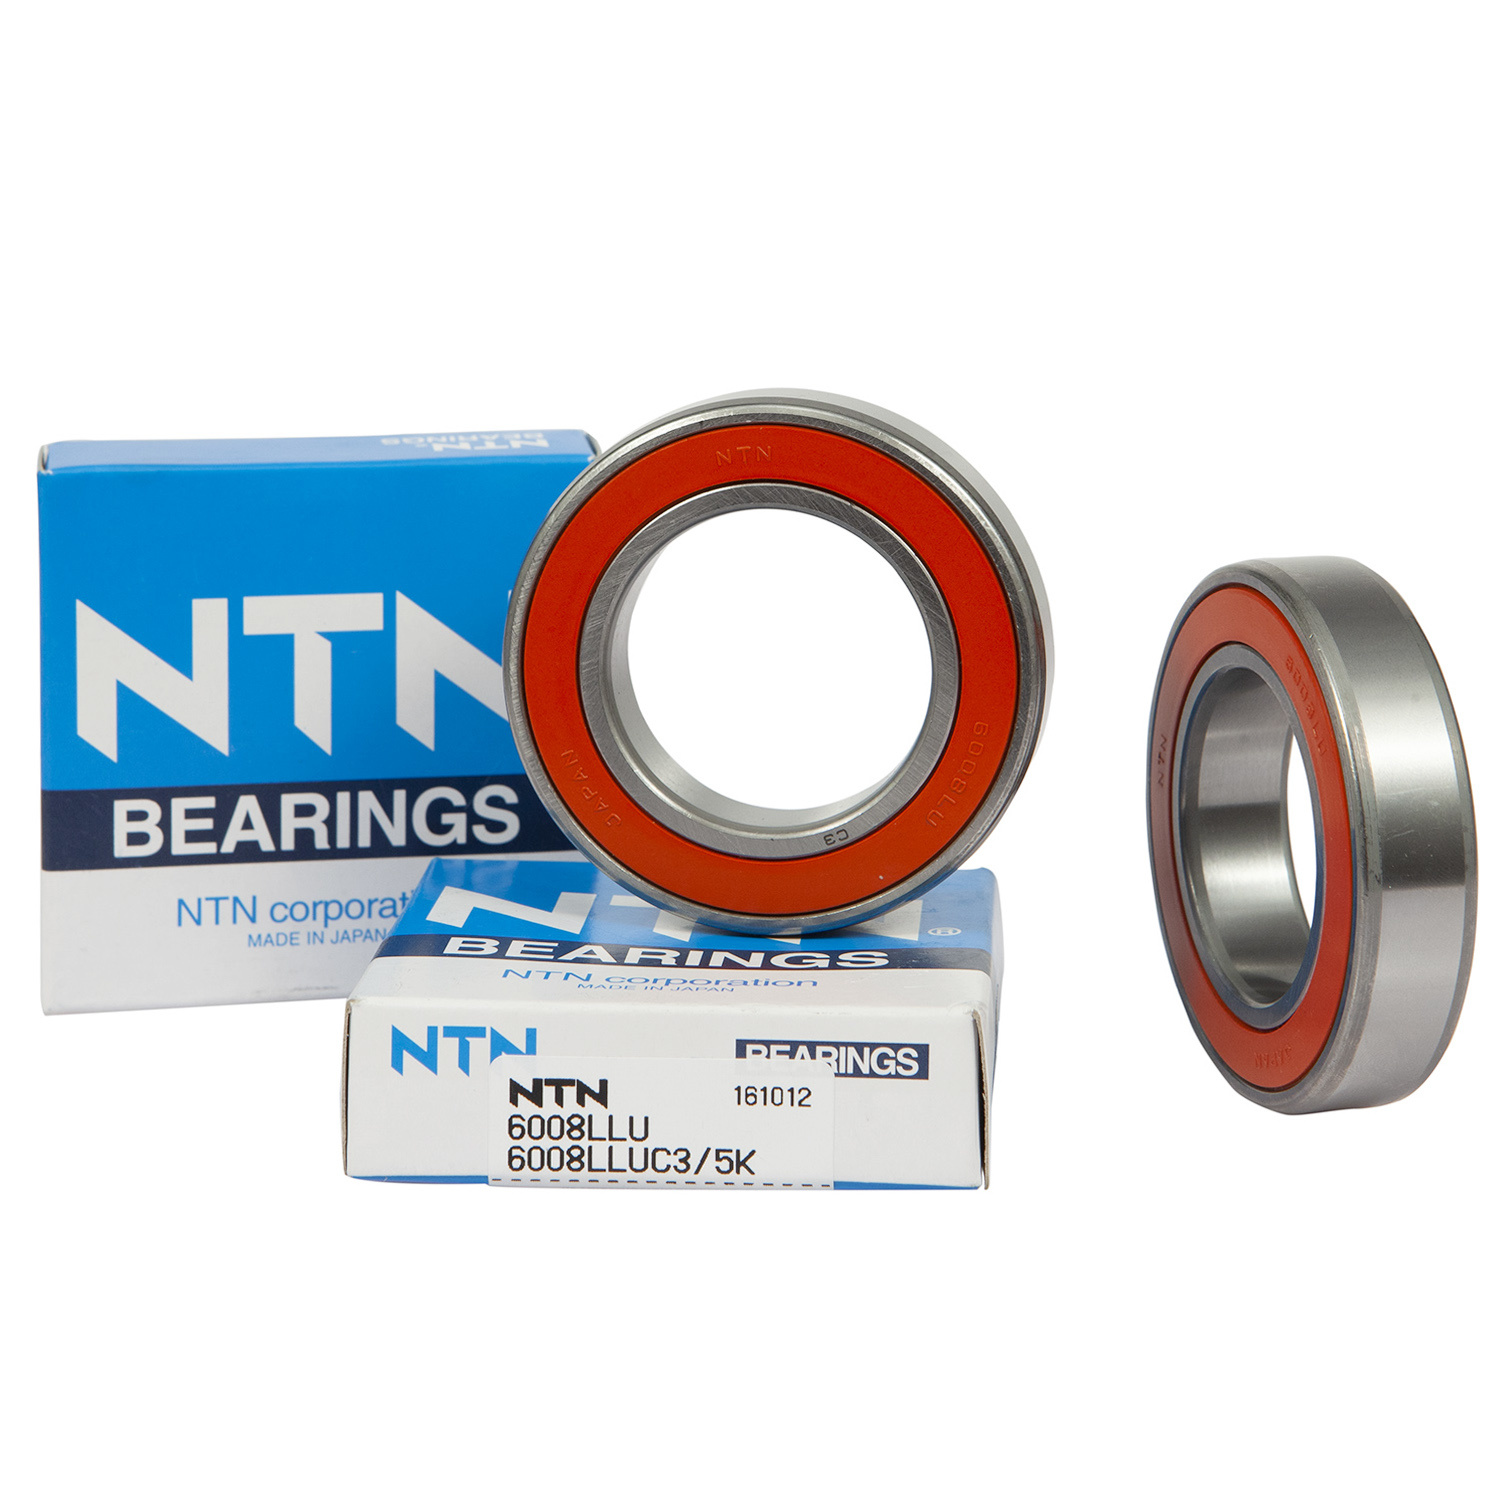 6201-2RS two side rubber seals bearing 6201-rs ball bearings 6201 rs Qty.10